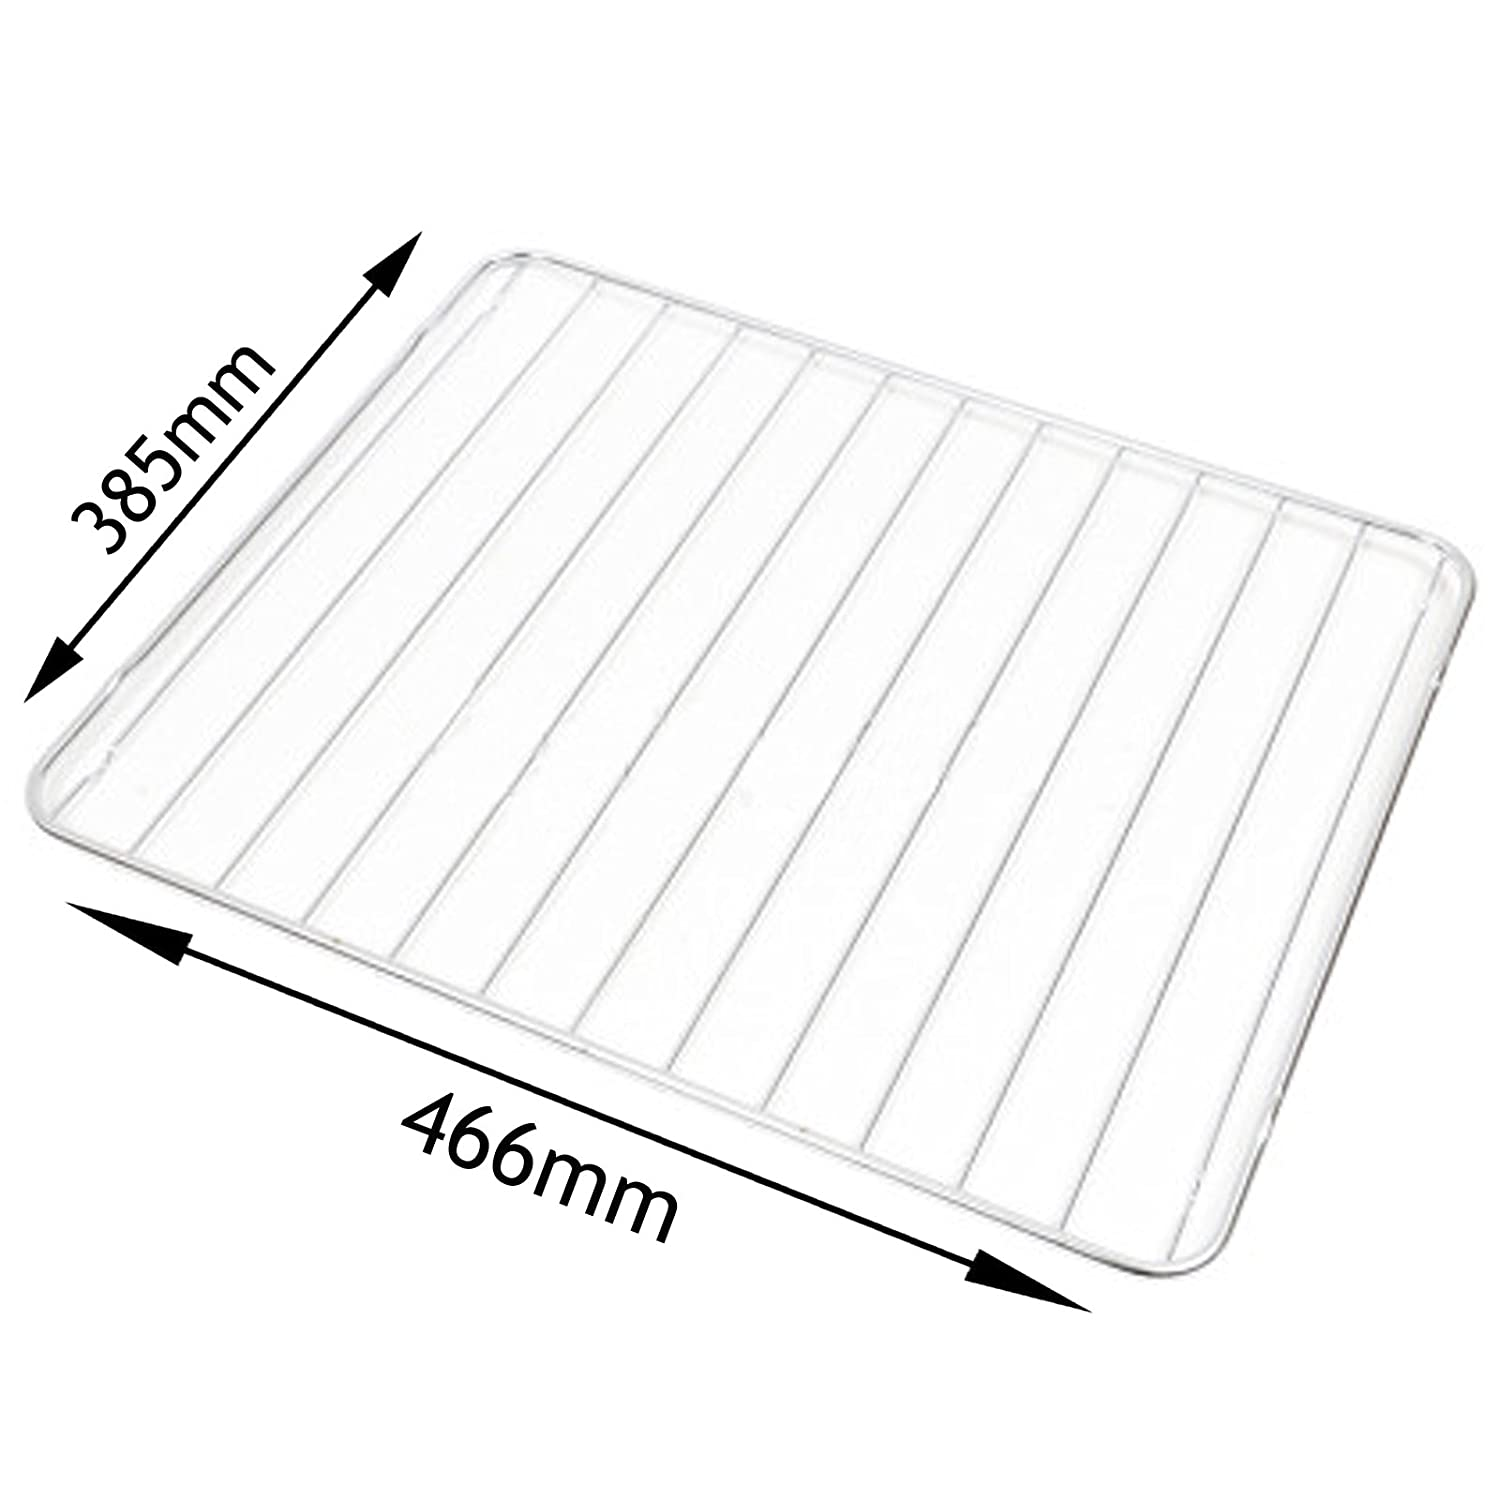 SPARES2GO Shelf for Electrolux Oven Grill Cooker (466 x 385mm)